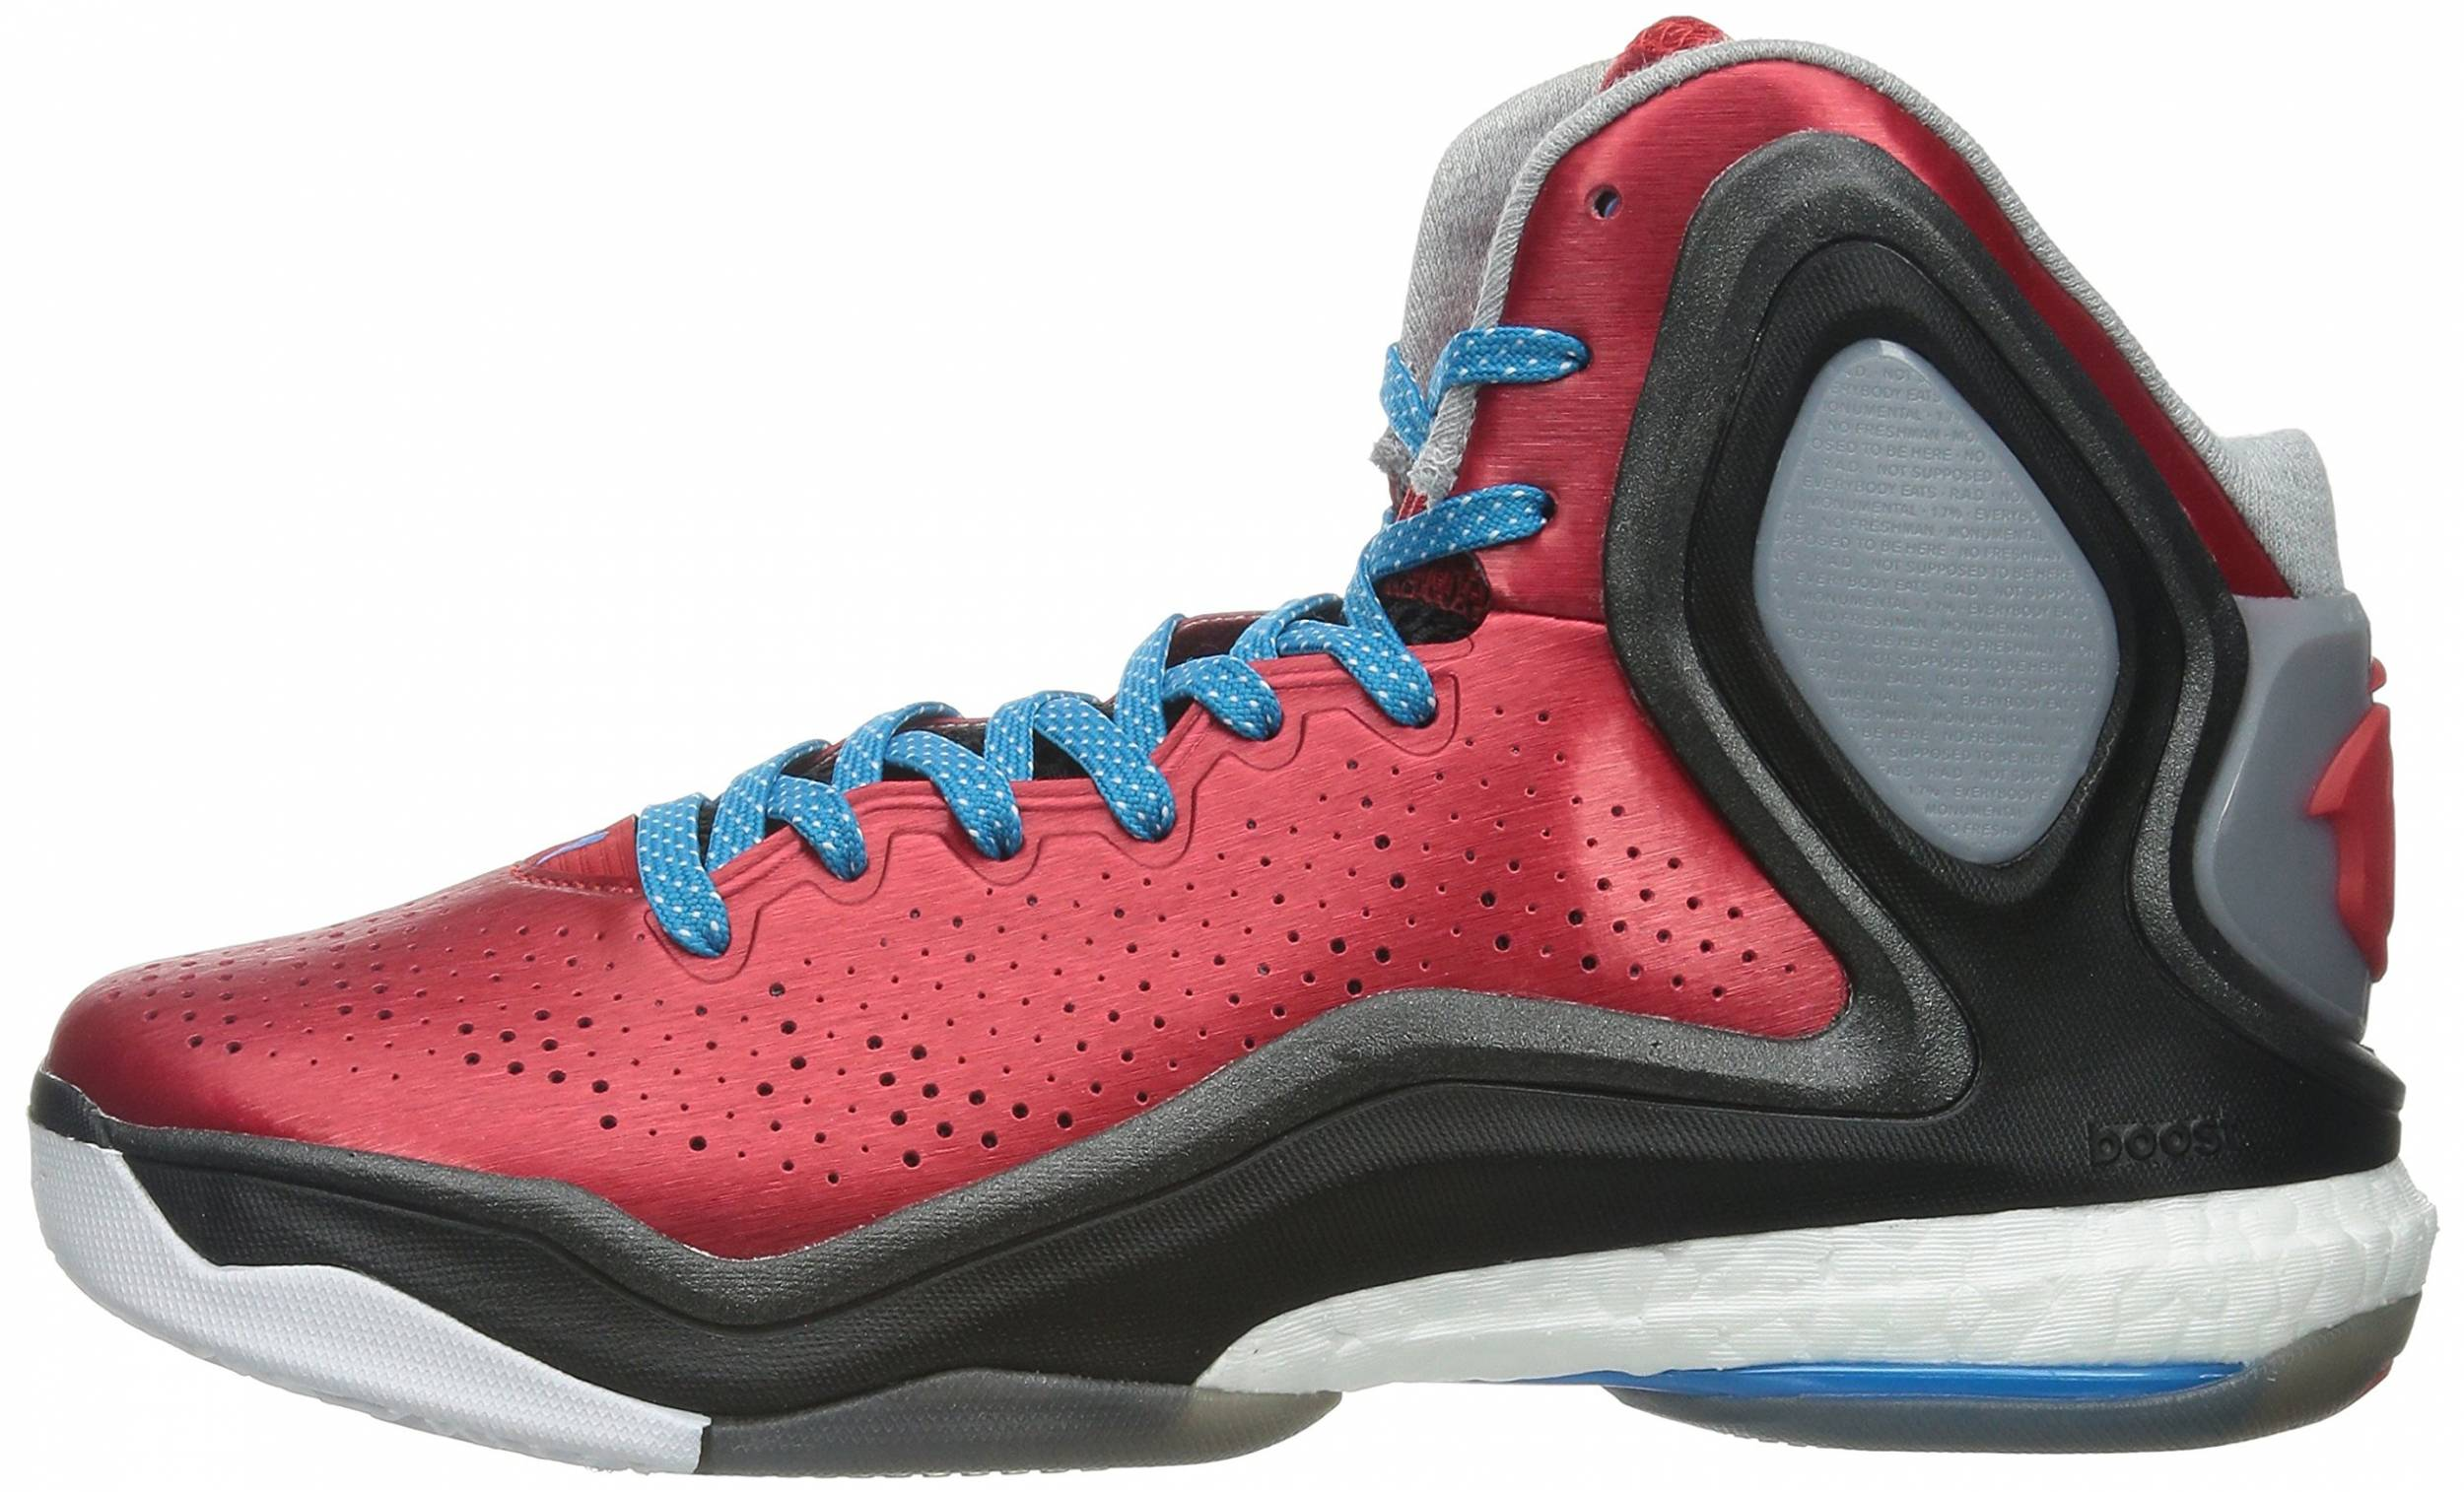 red d rose shoes cheap online